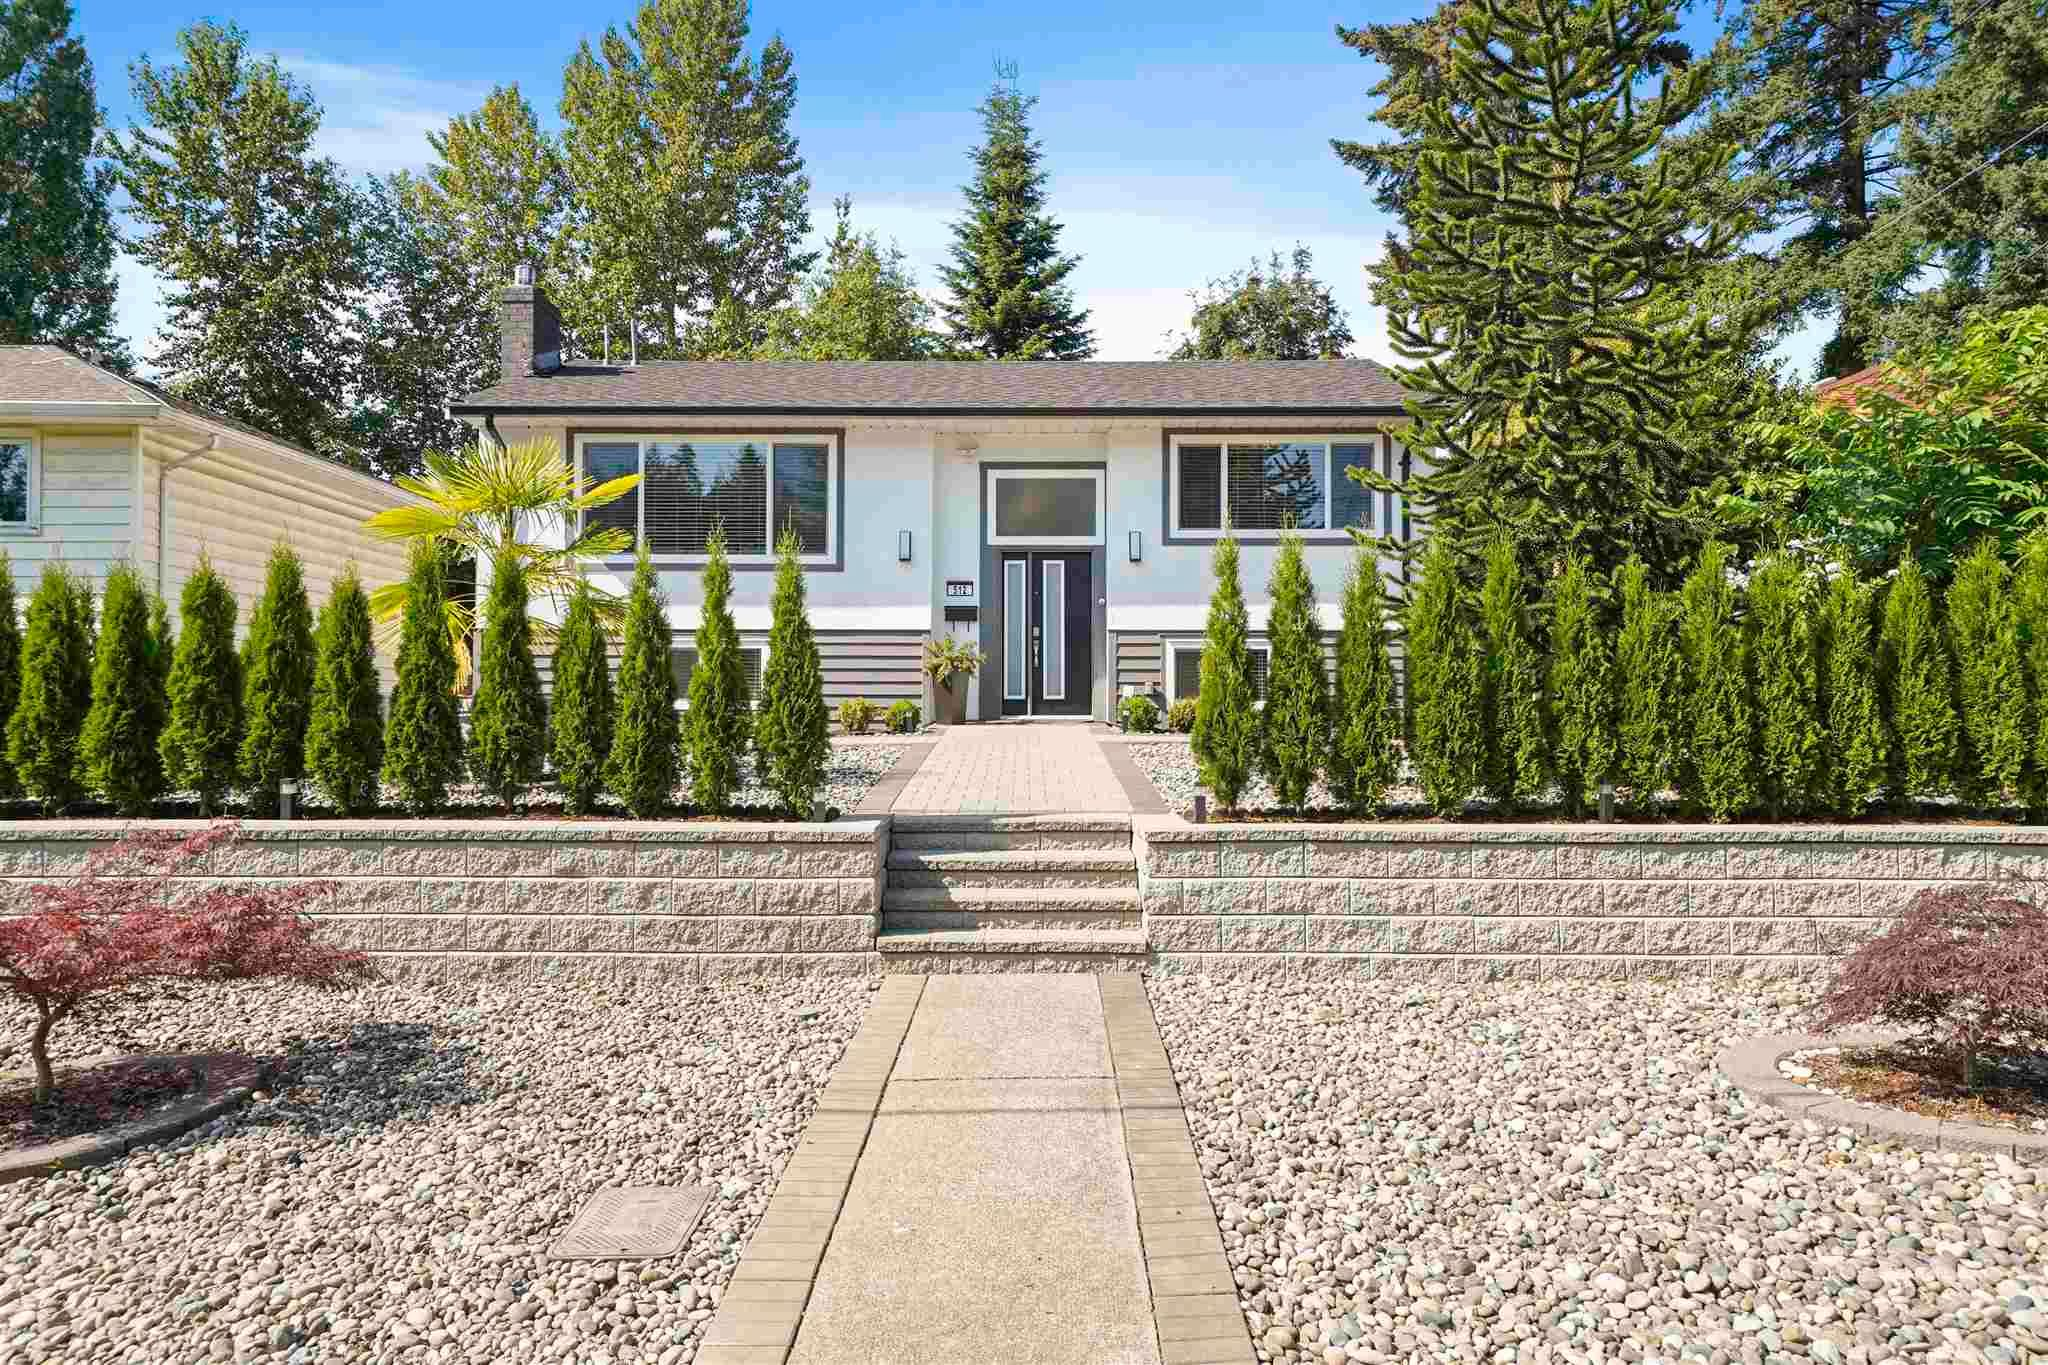 Main Photo: 512 W 24TH Street in North Vancouver: Central Lonsdale House for sale : MLS®# R2605824